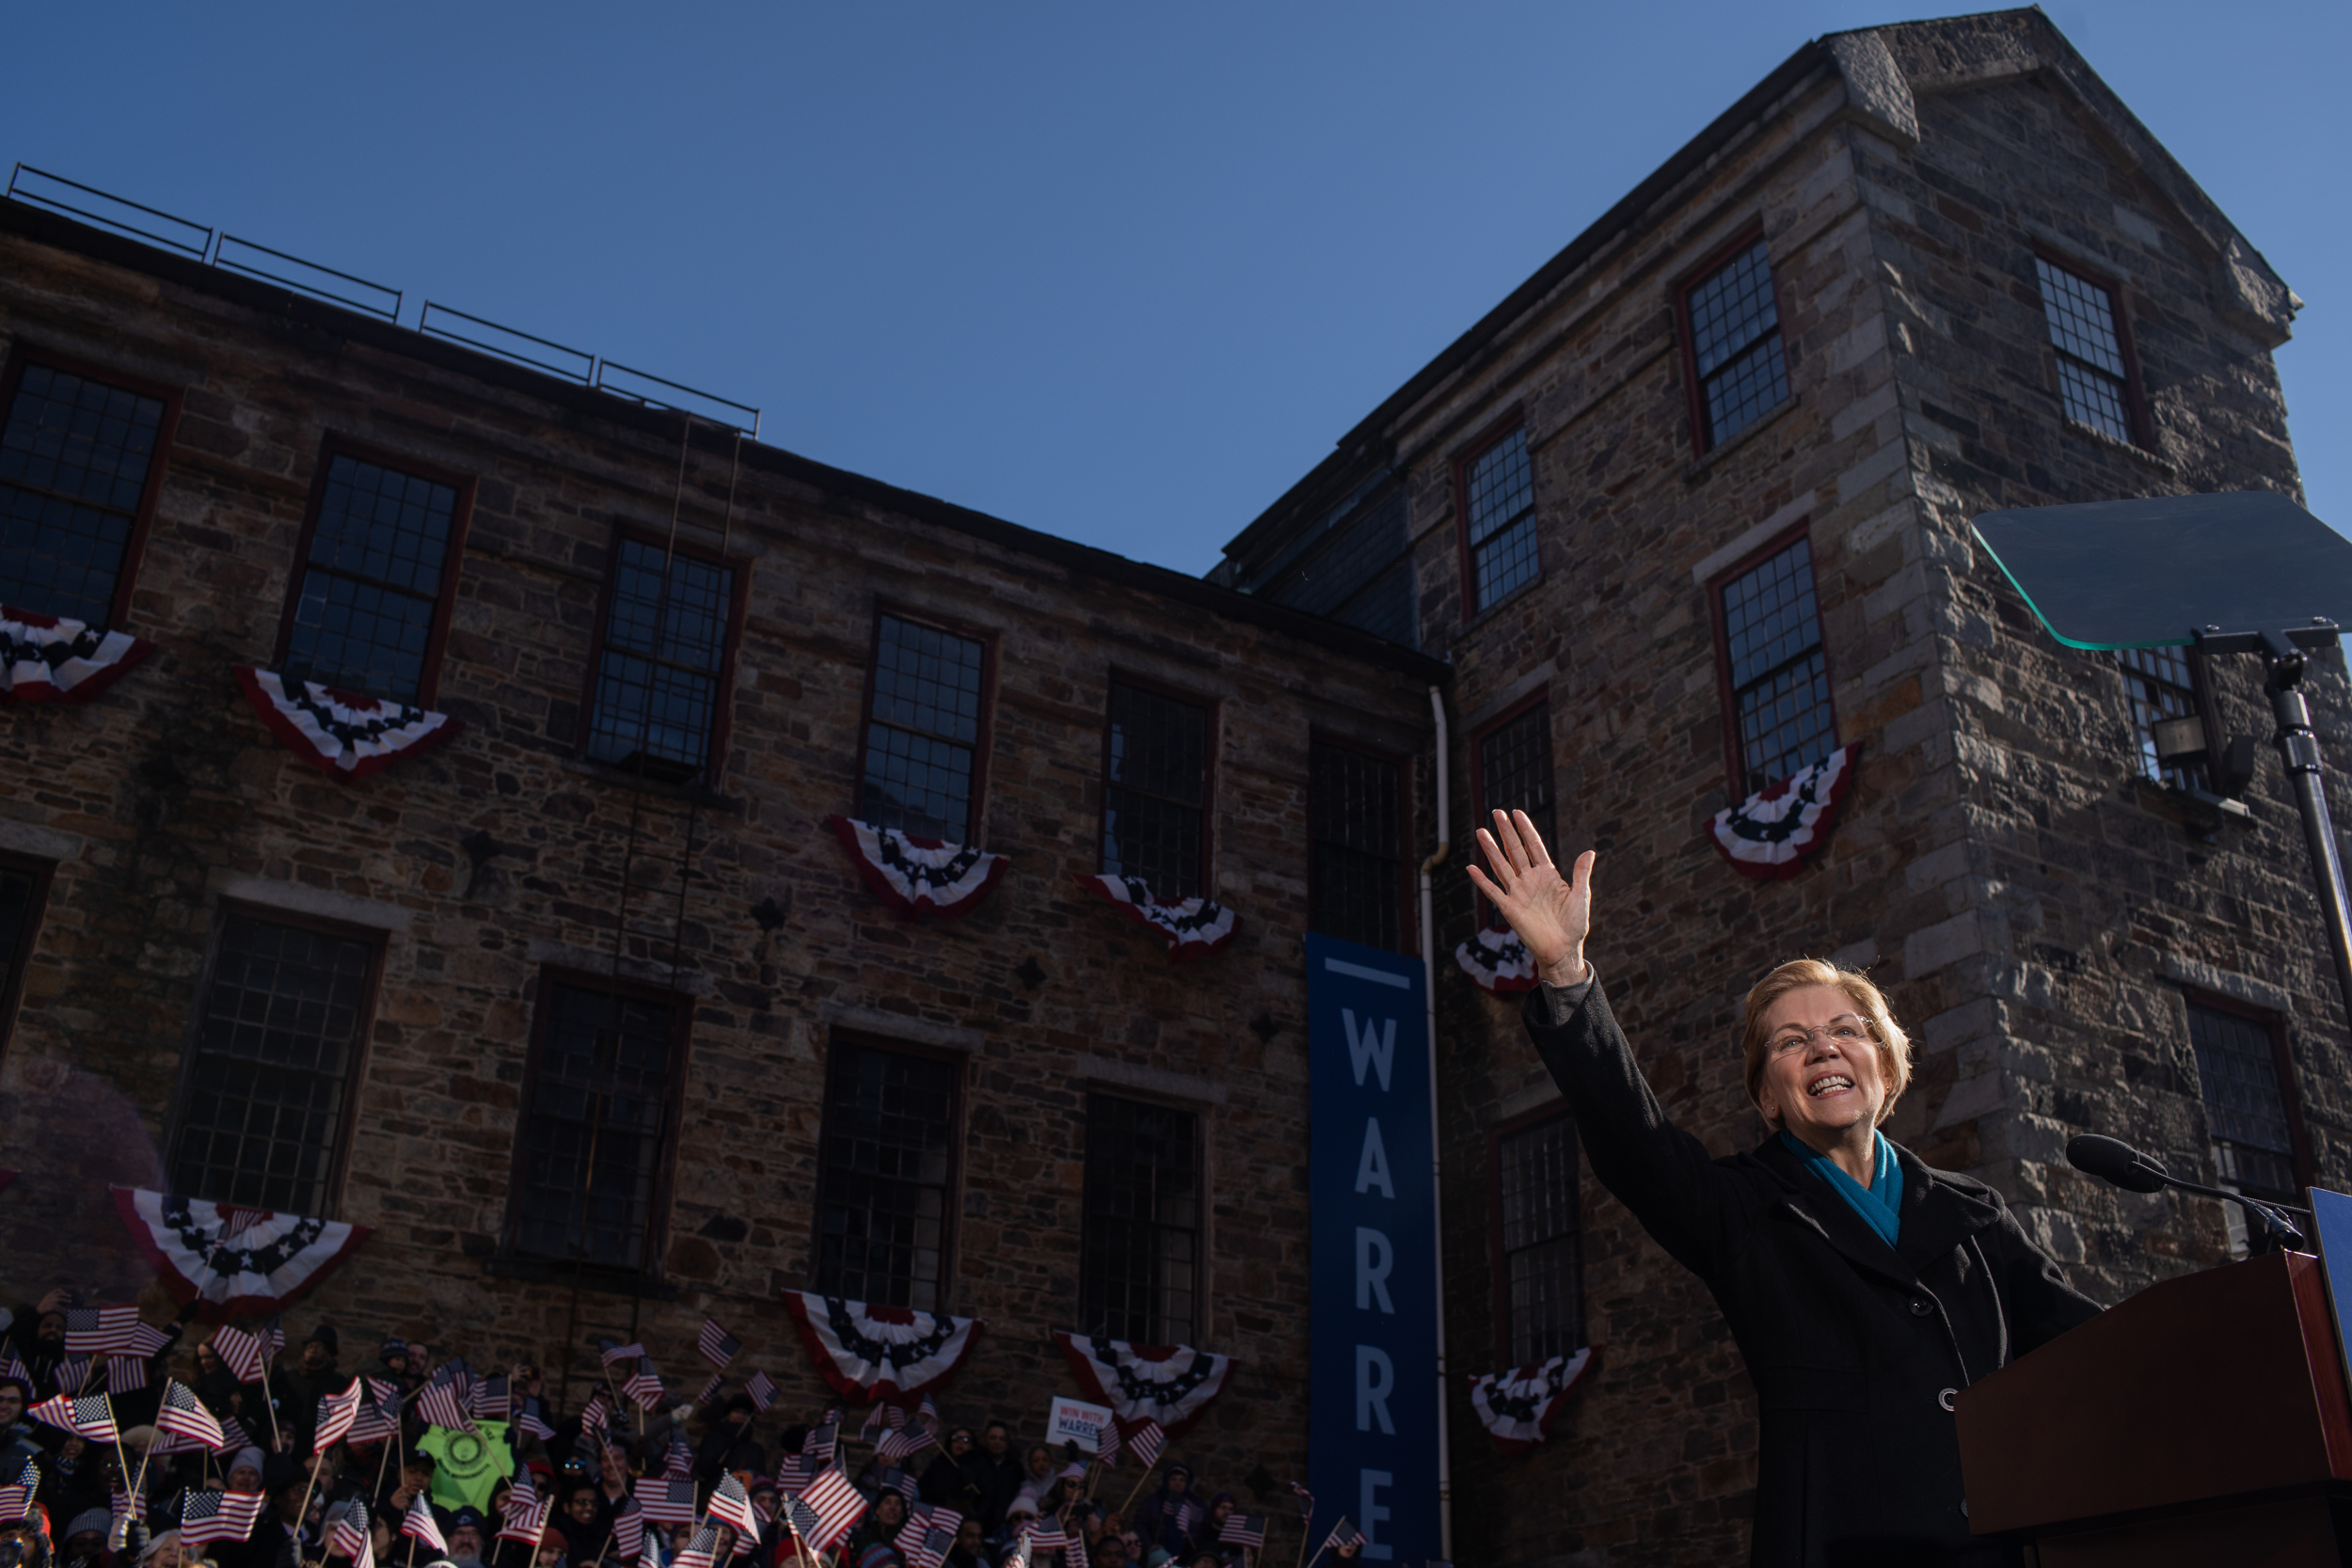 Senator Elizabeth Warren of Massachusetts kicked off her 2020 presidential bid at Everett Mill in Lawrence, Mass., on Saturday, February 9, 2019. The mill was the location for a women-led labor strike in 1912 after their pay was cut. Warren will travel to New Hampshire and Iowa following the event.